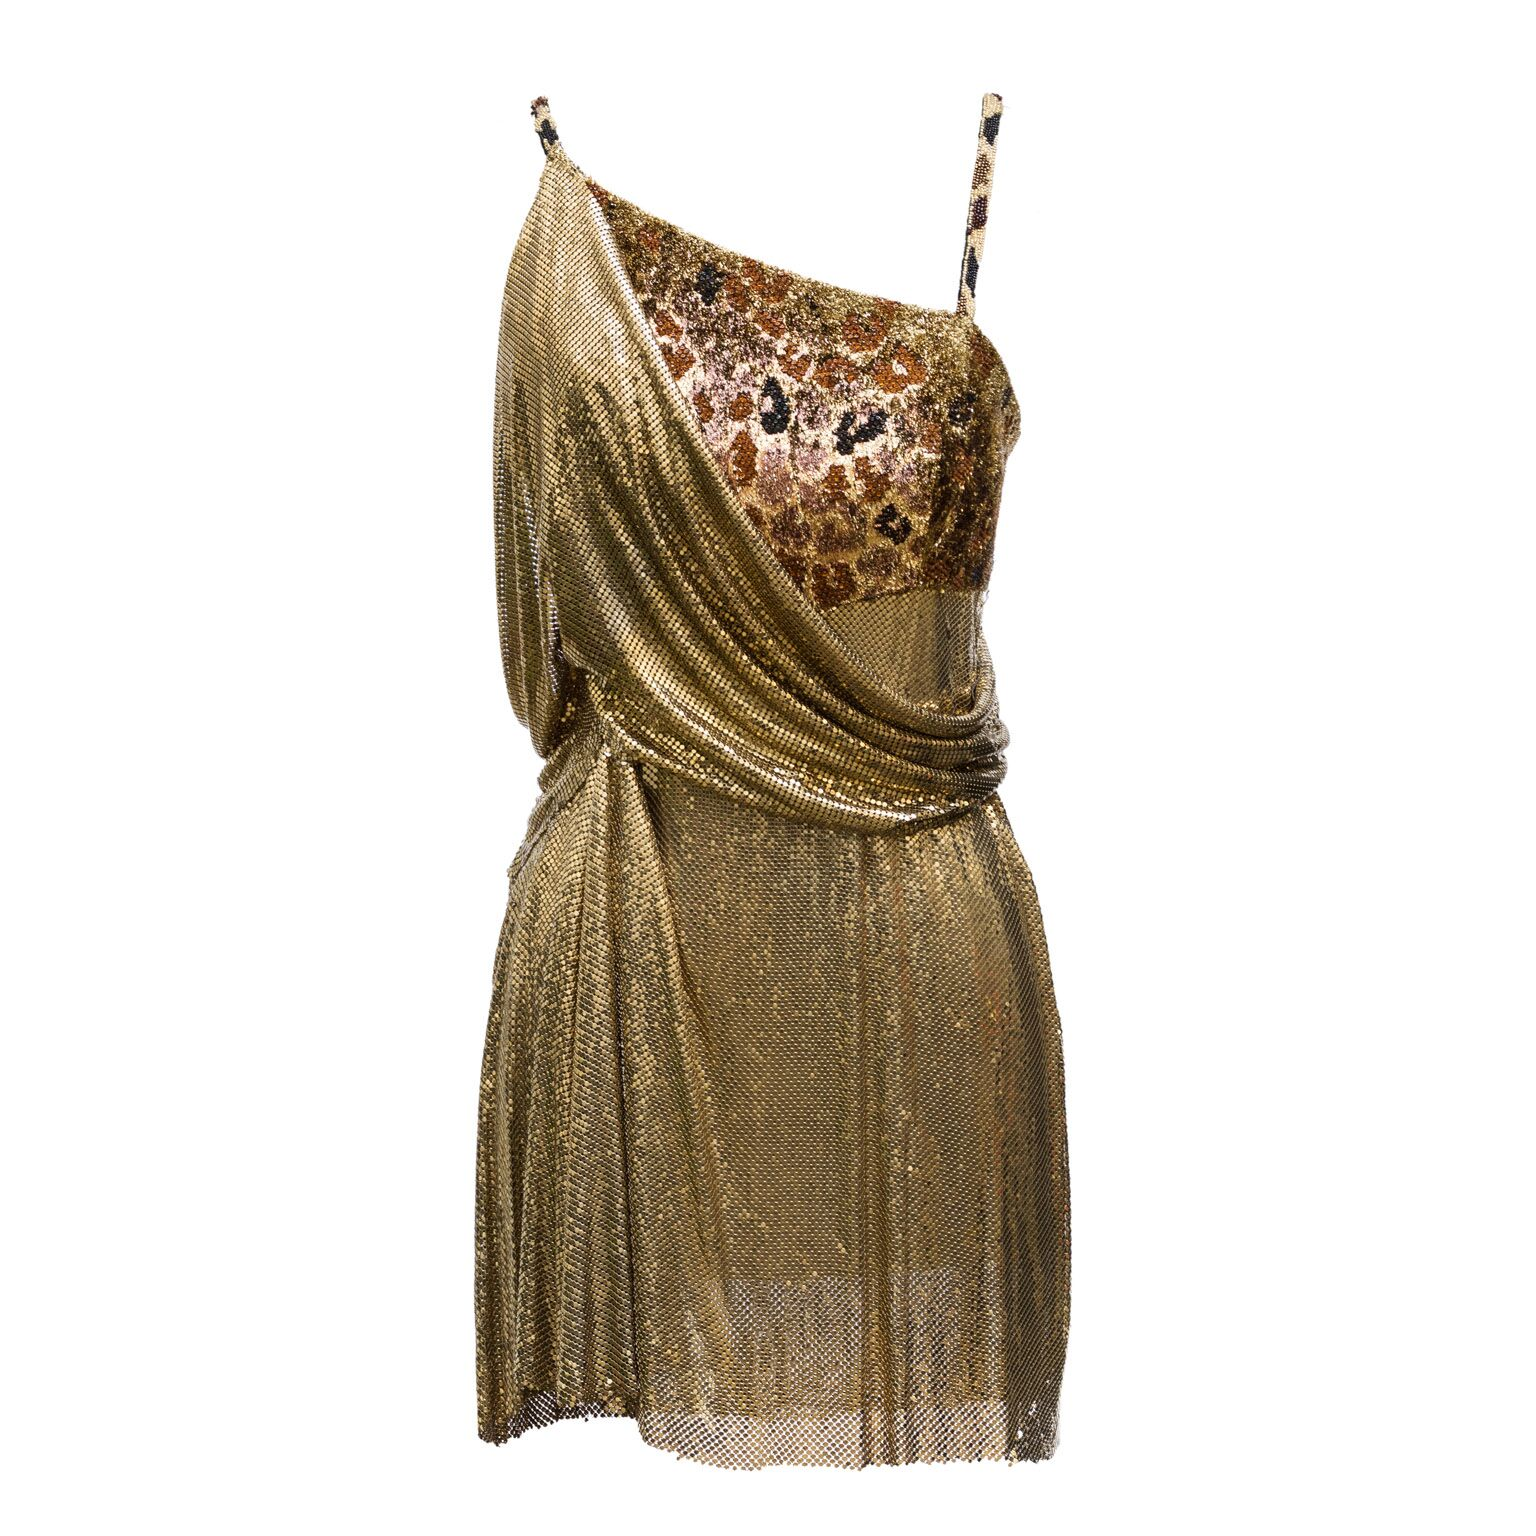 Versace metal couture dress, 90s